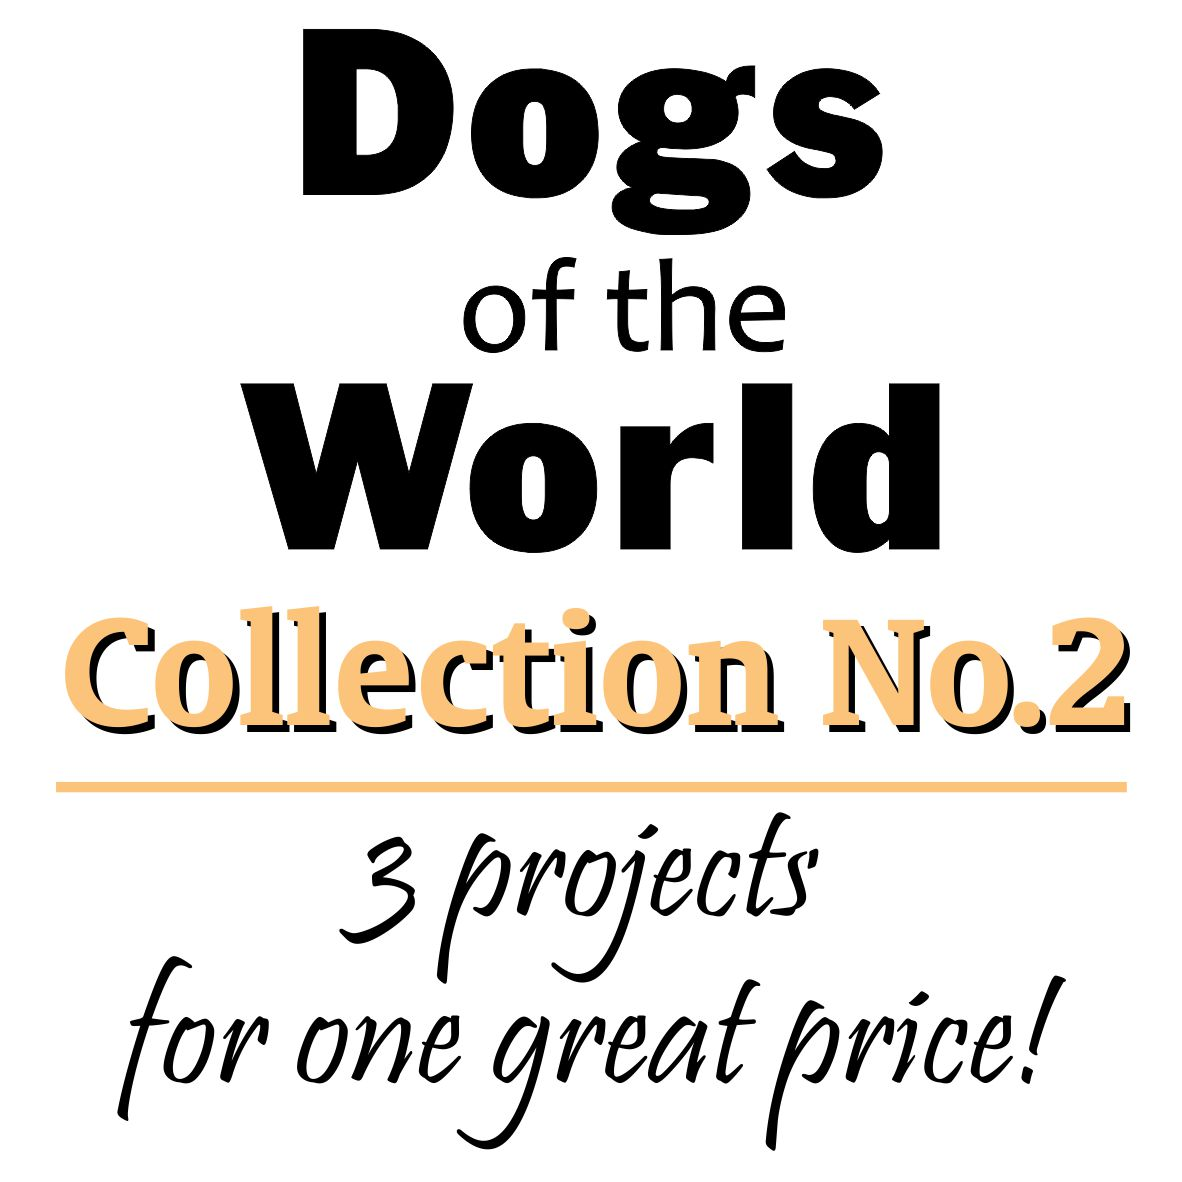 Dogs of the World Collection No.2